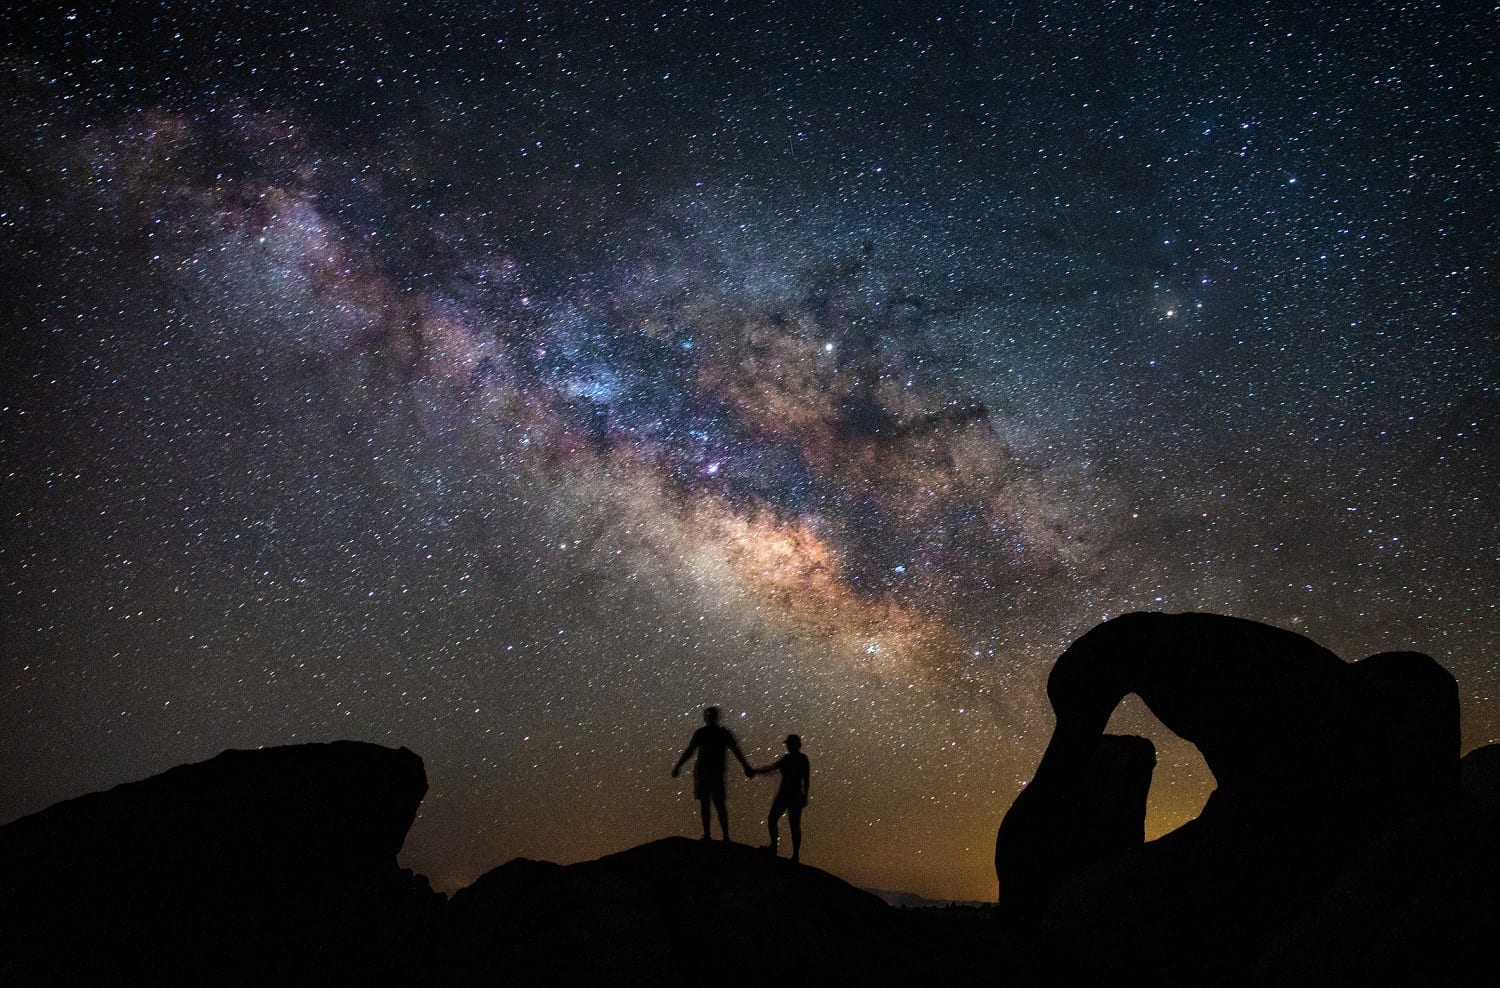 Silhouette of two people under the Milky Way at Mobius Arch: ID 98902216 © Valentin Armianu | Dreamstime.com